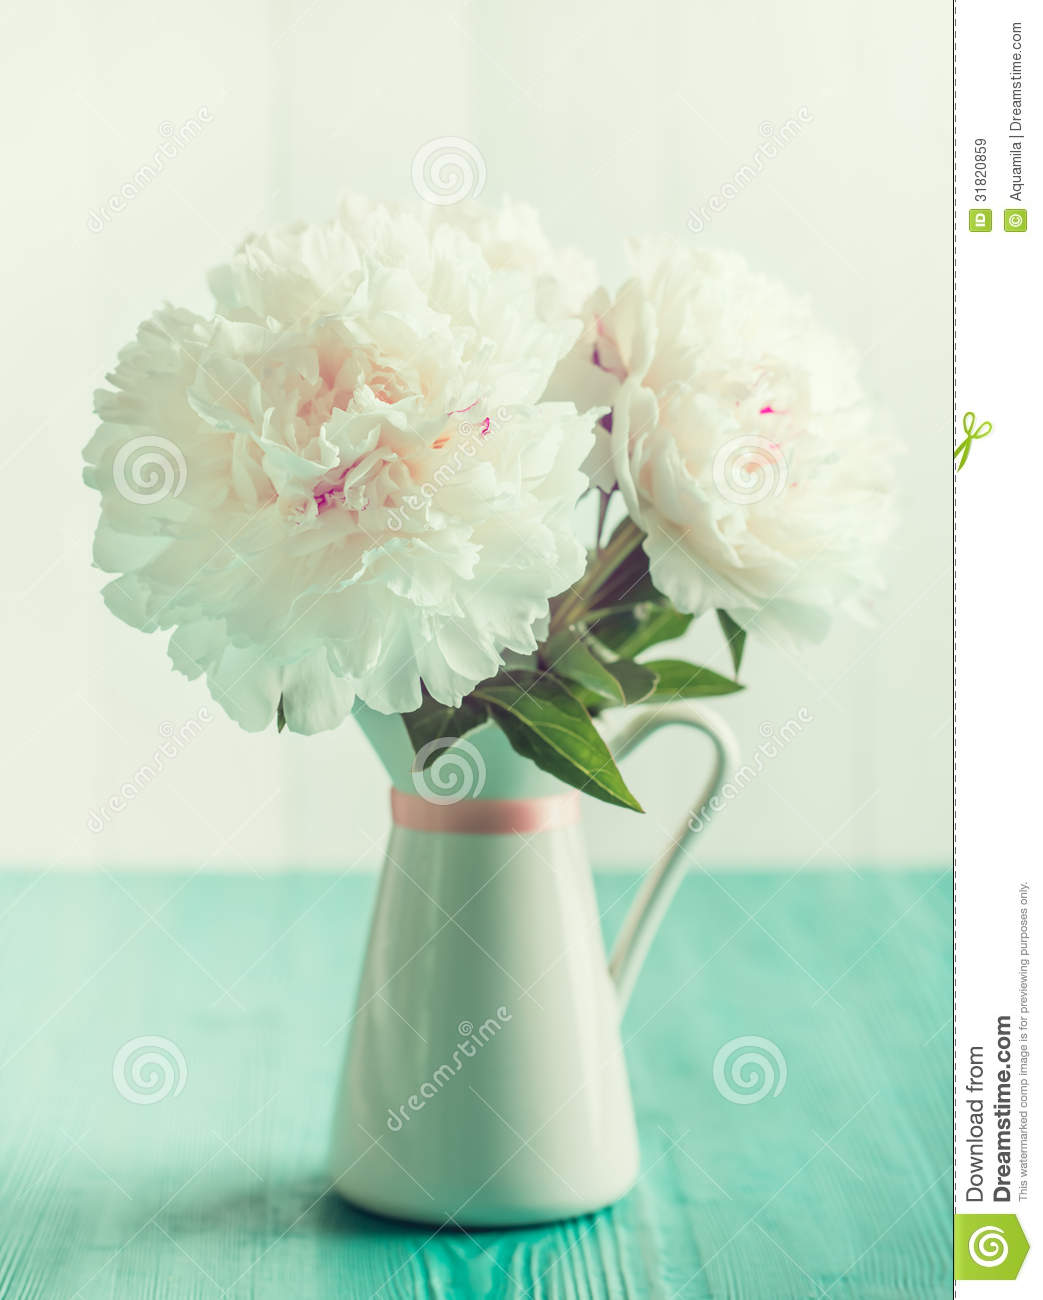 White peonies in floral vase on wooden table vintage mint colors white peonies in floral vase on wooden table vintage mint colors reviewsmspy